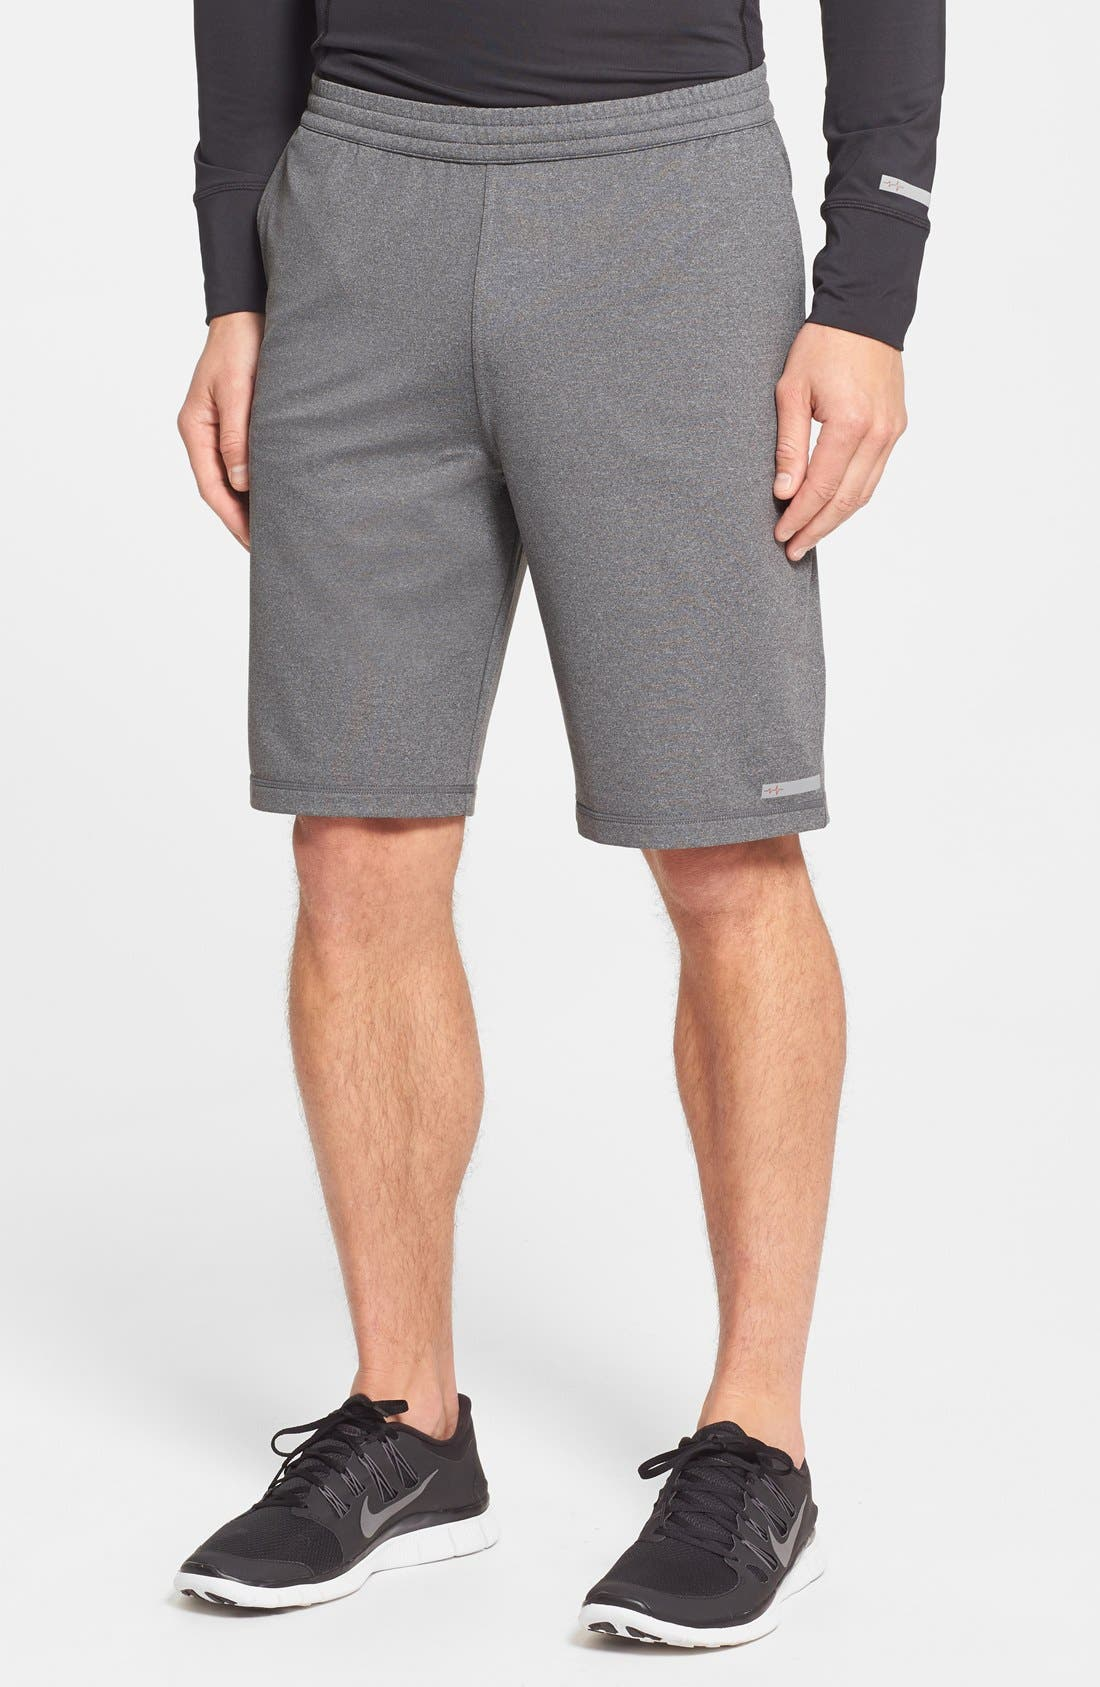 Alternate Image 1 Selected - BPM Fueled by Zella Athletic Running Shorts